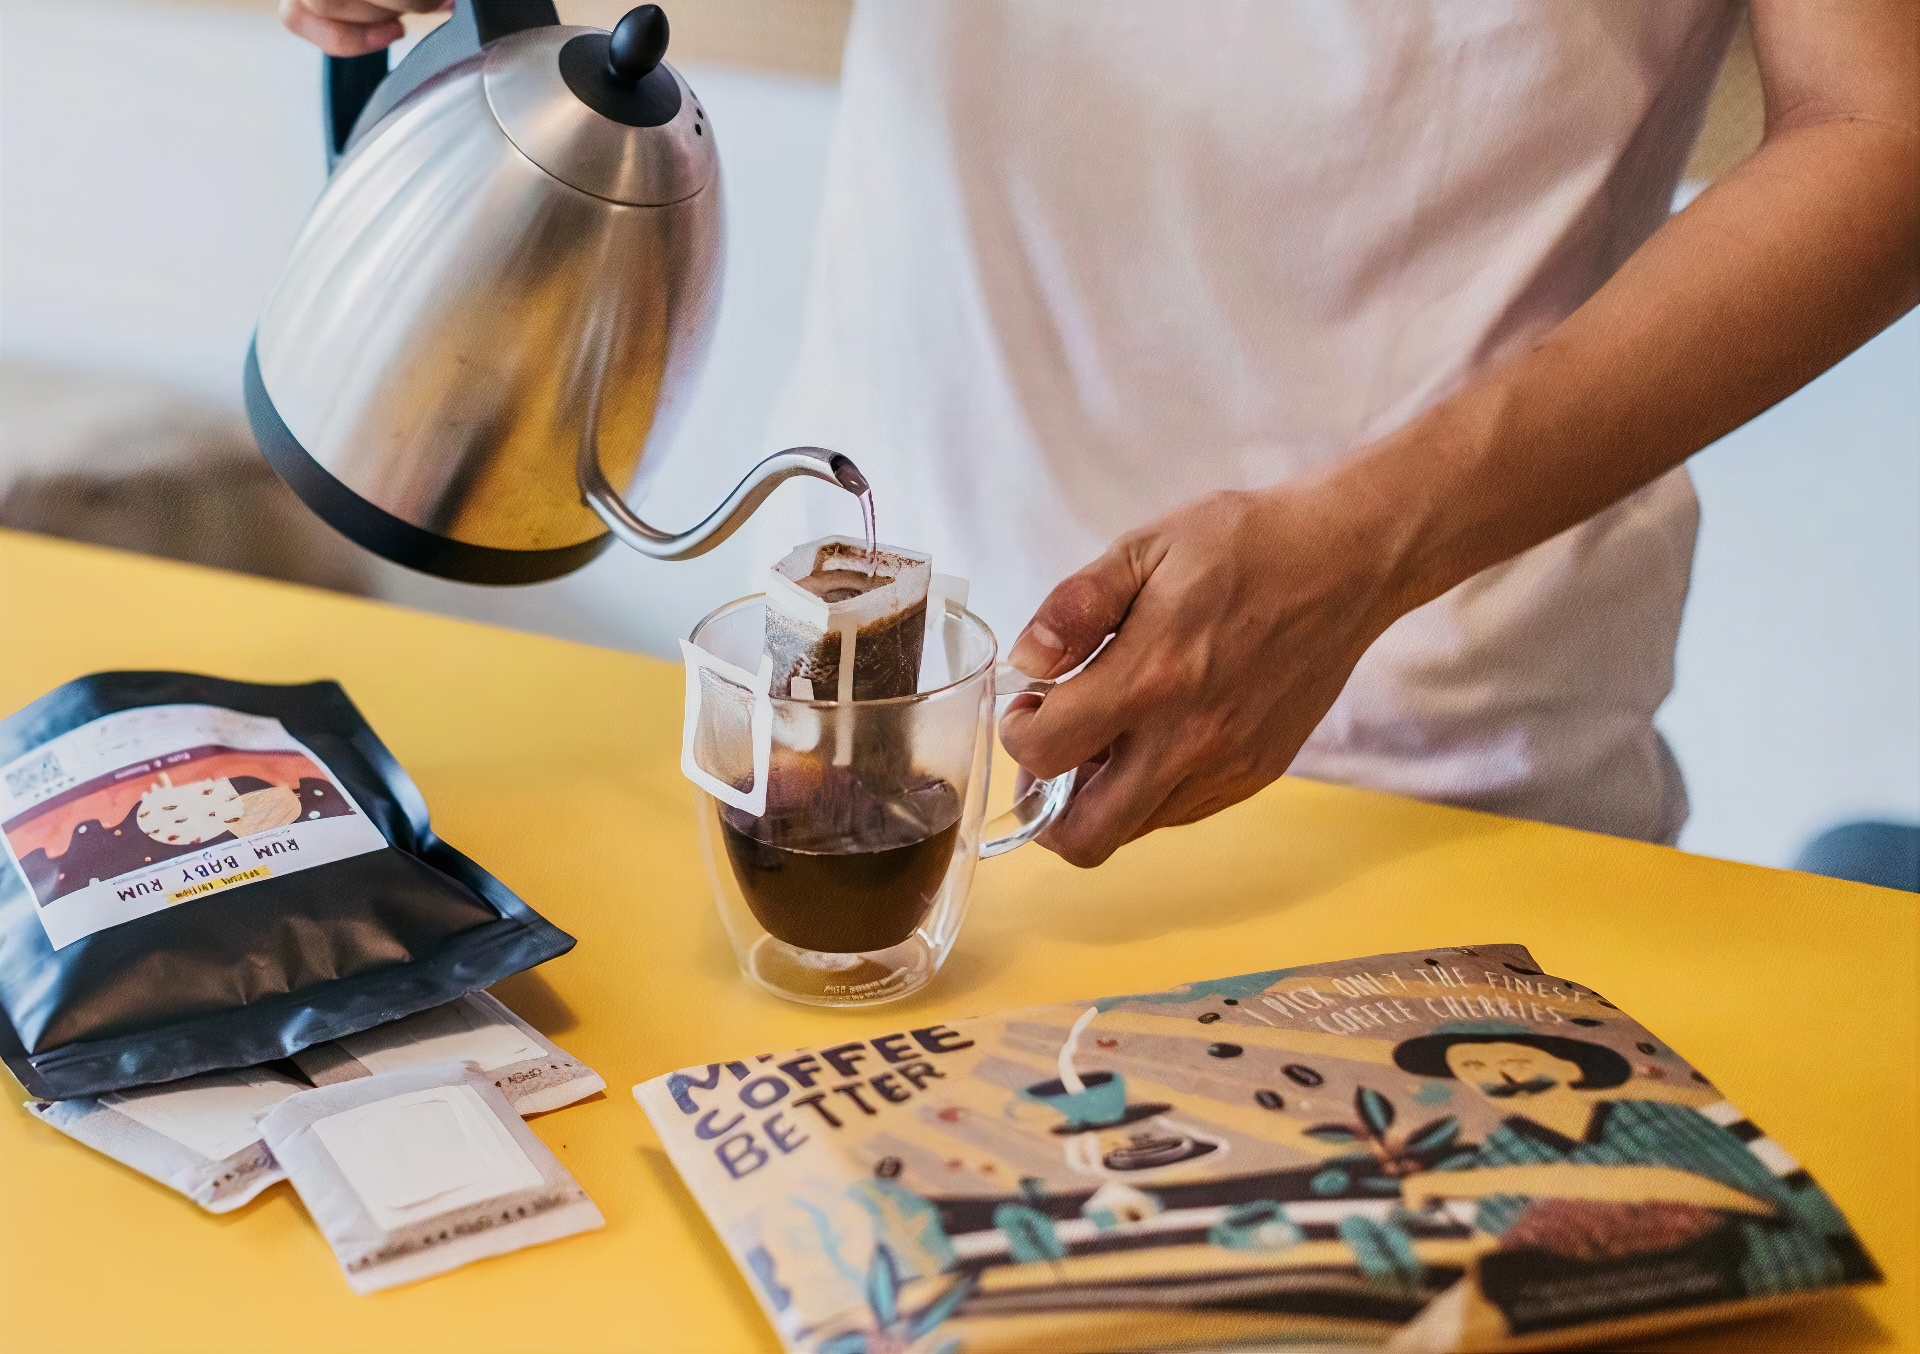 a man pouring water into a drip coffee bag